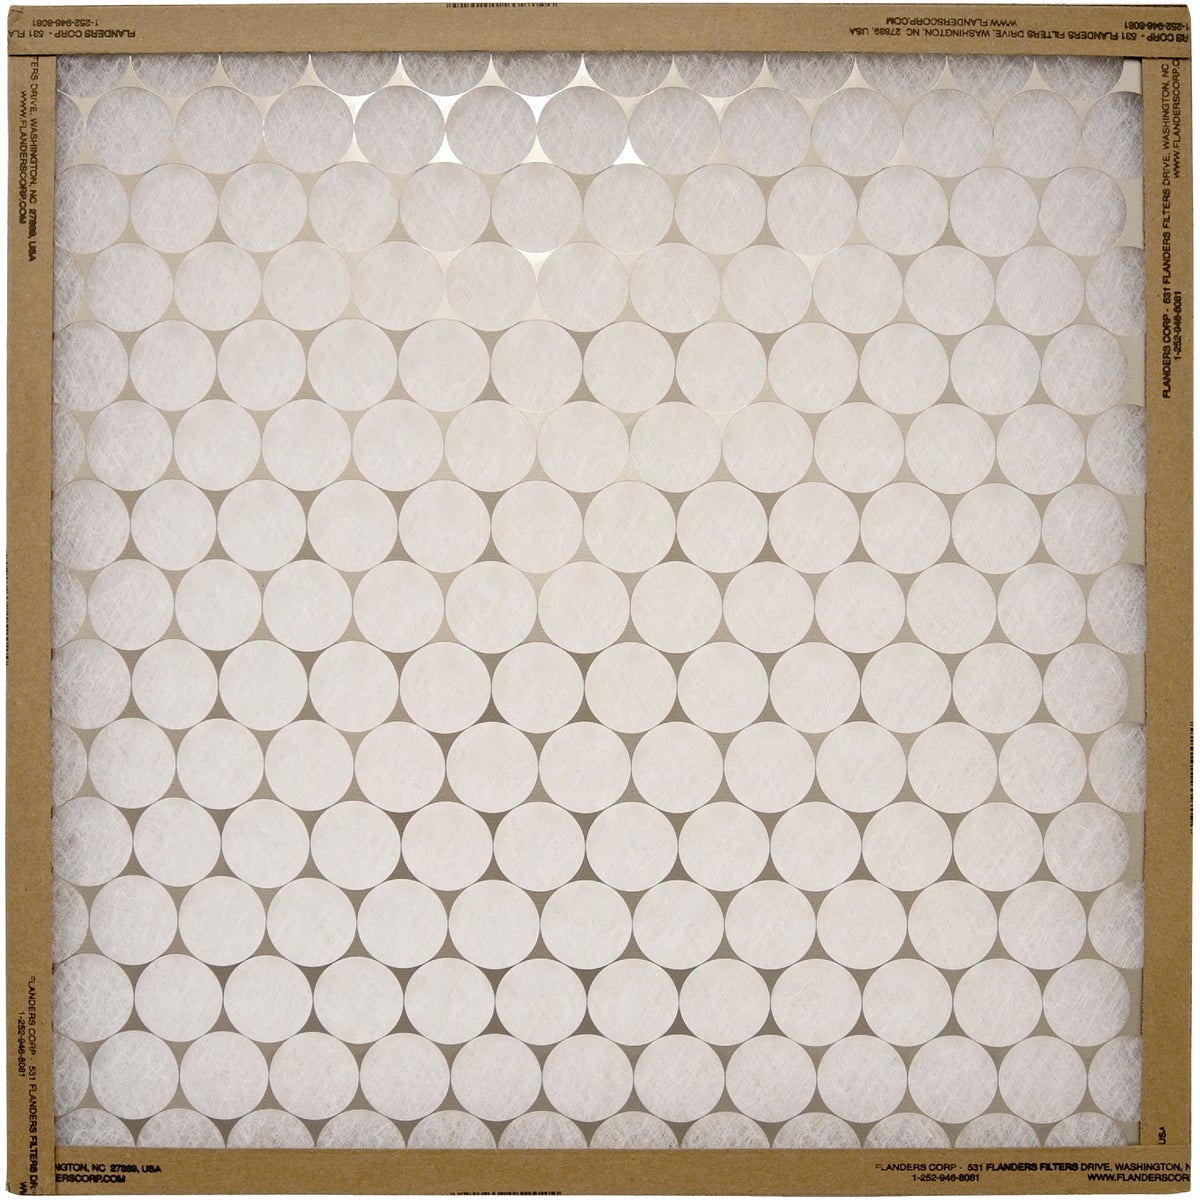 18X18 FURNACE FILTER - 10355.011818 by Flanders Corp